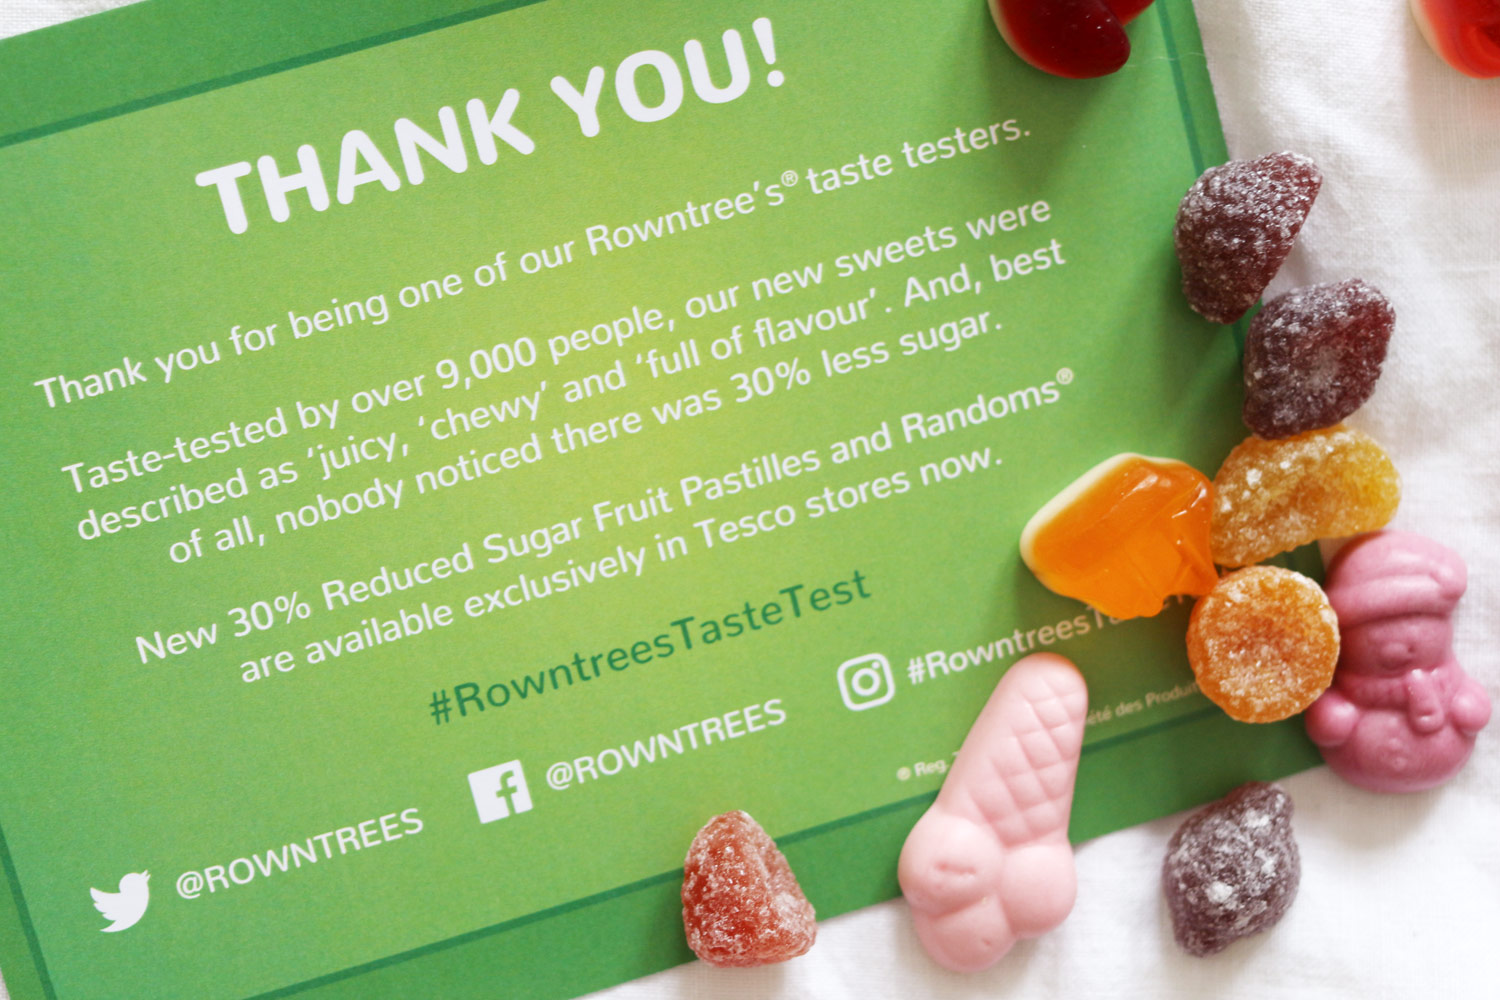 rowntrees-30-less-sugar-fruit-pastilles-randoms-review-5